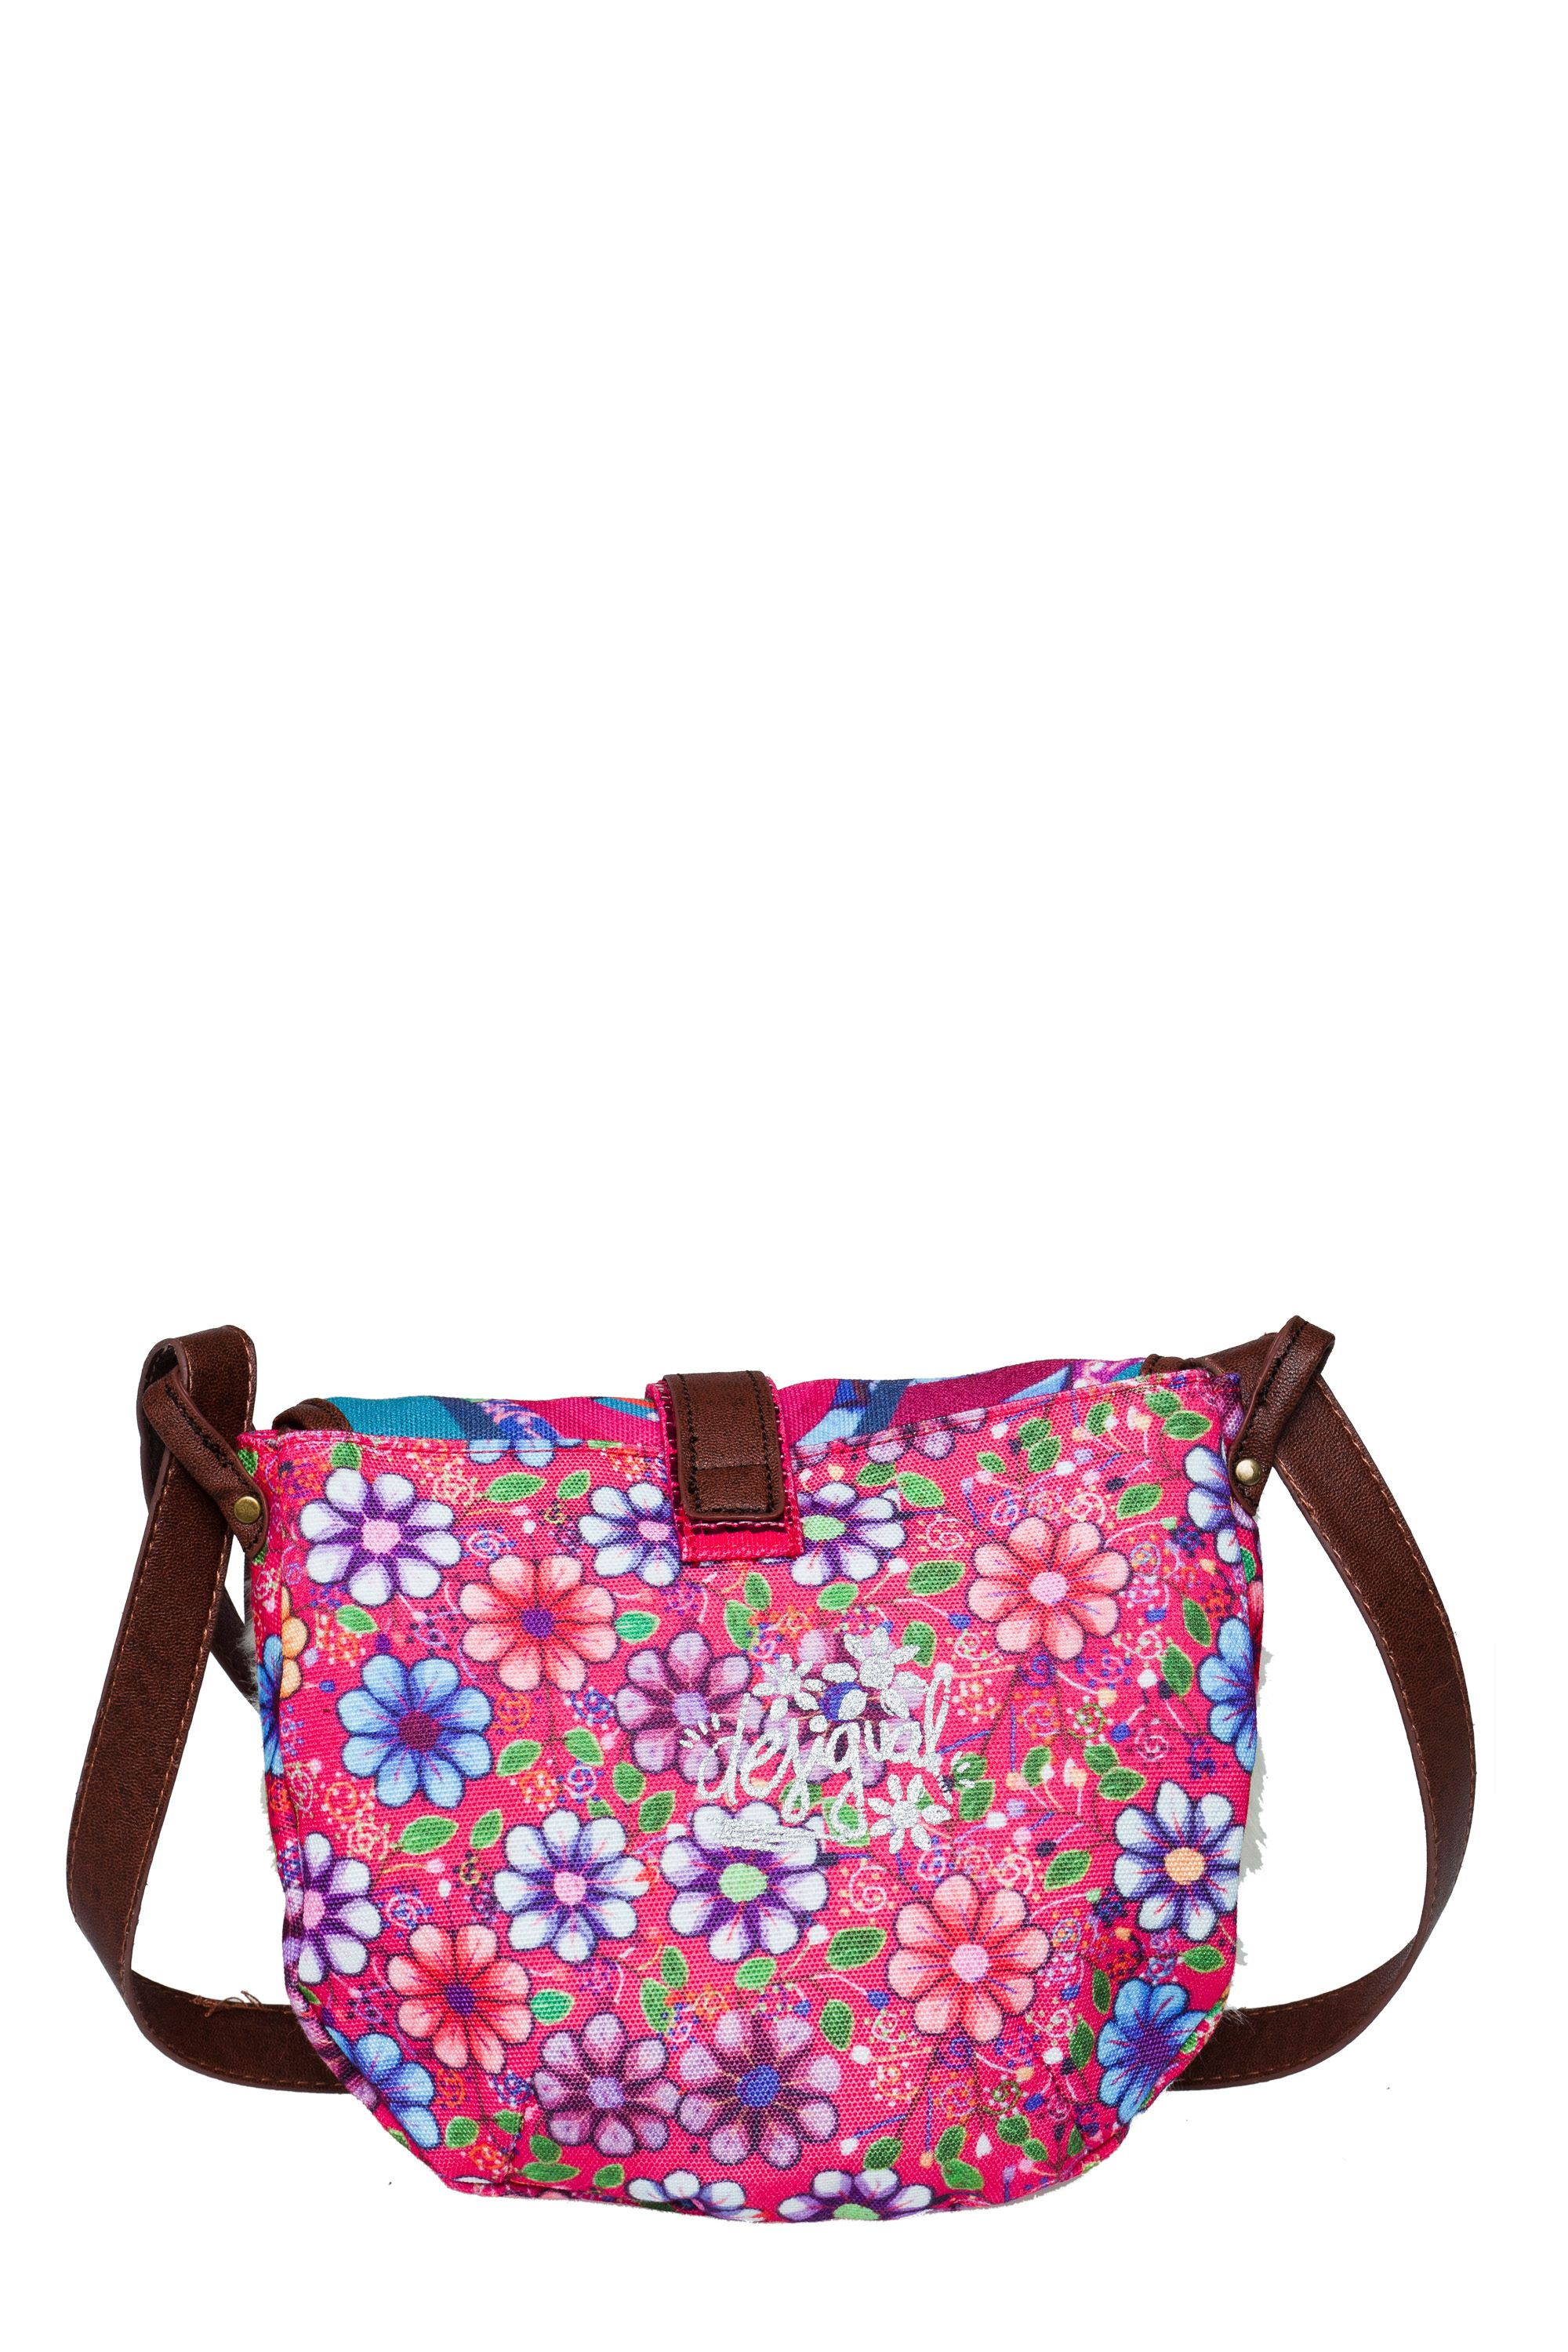 Girls blancos bag